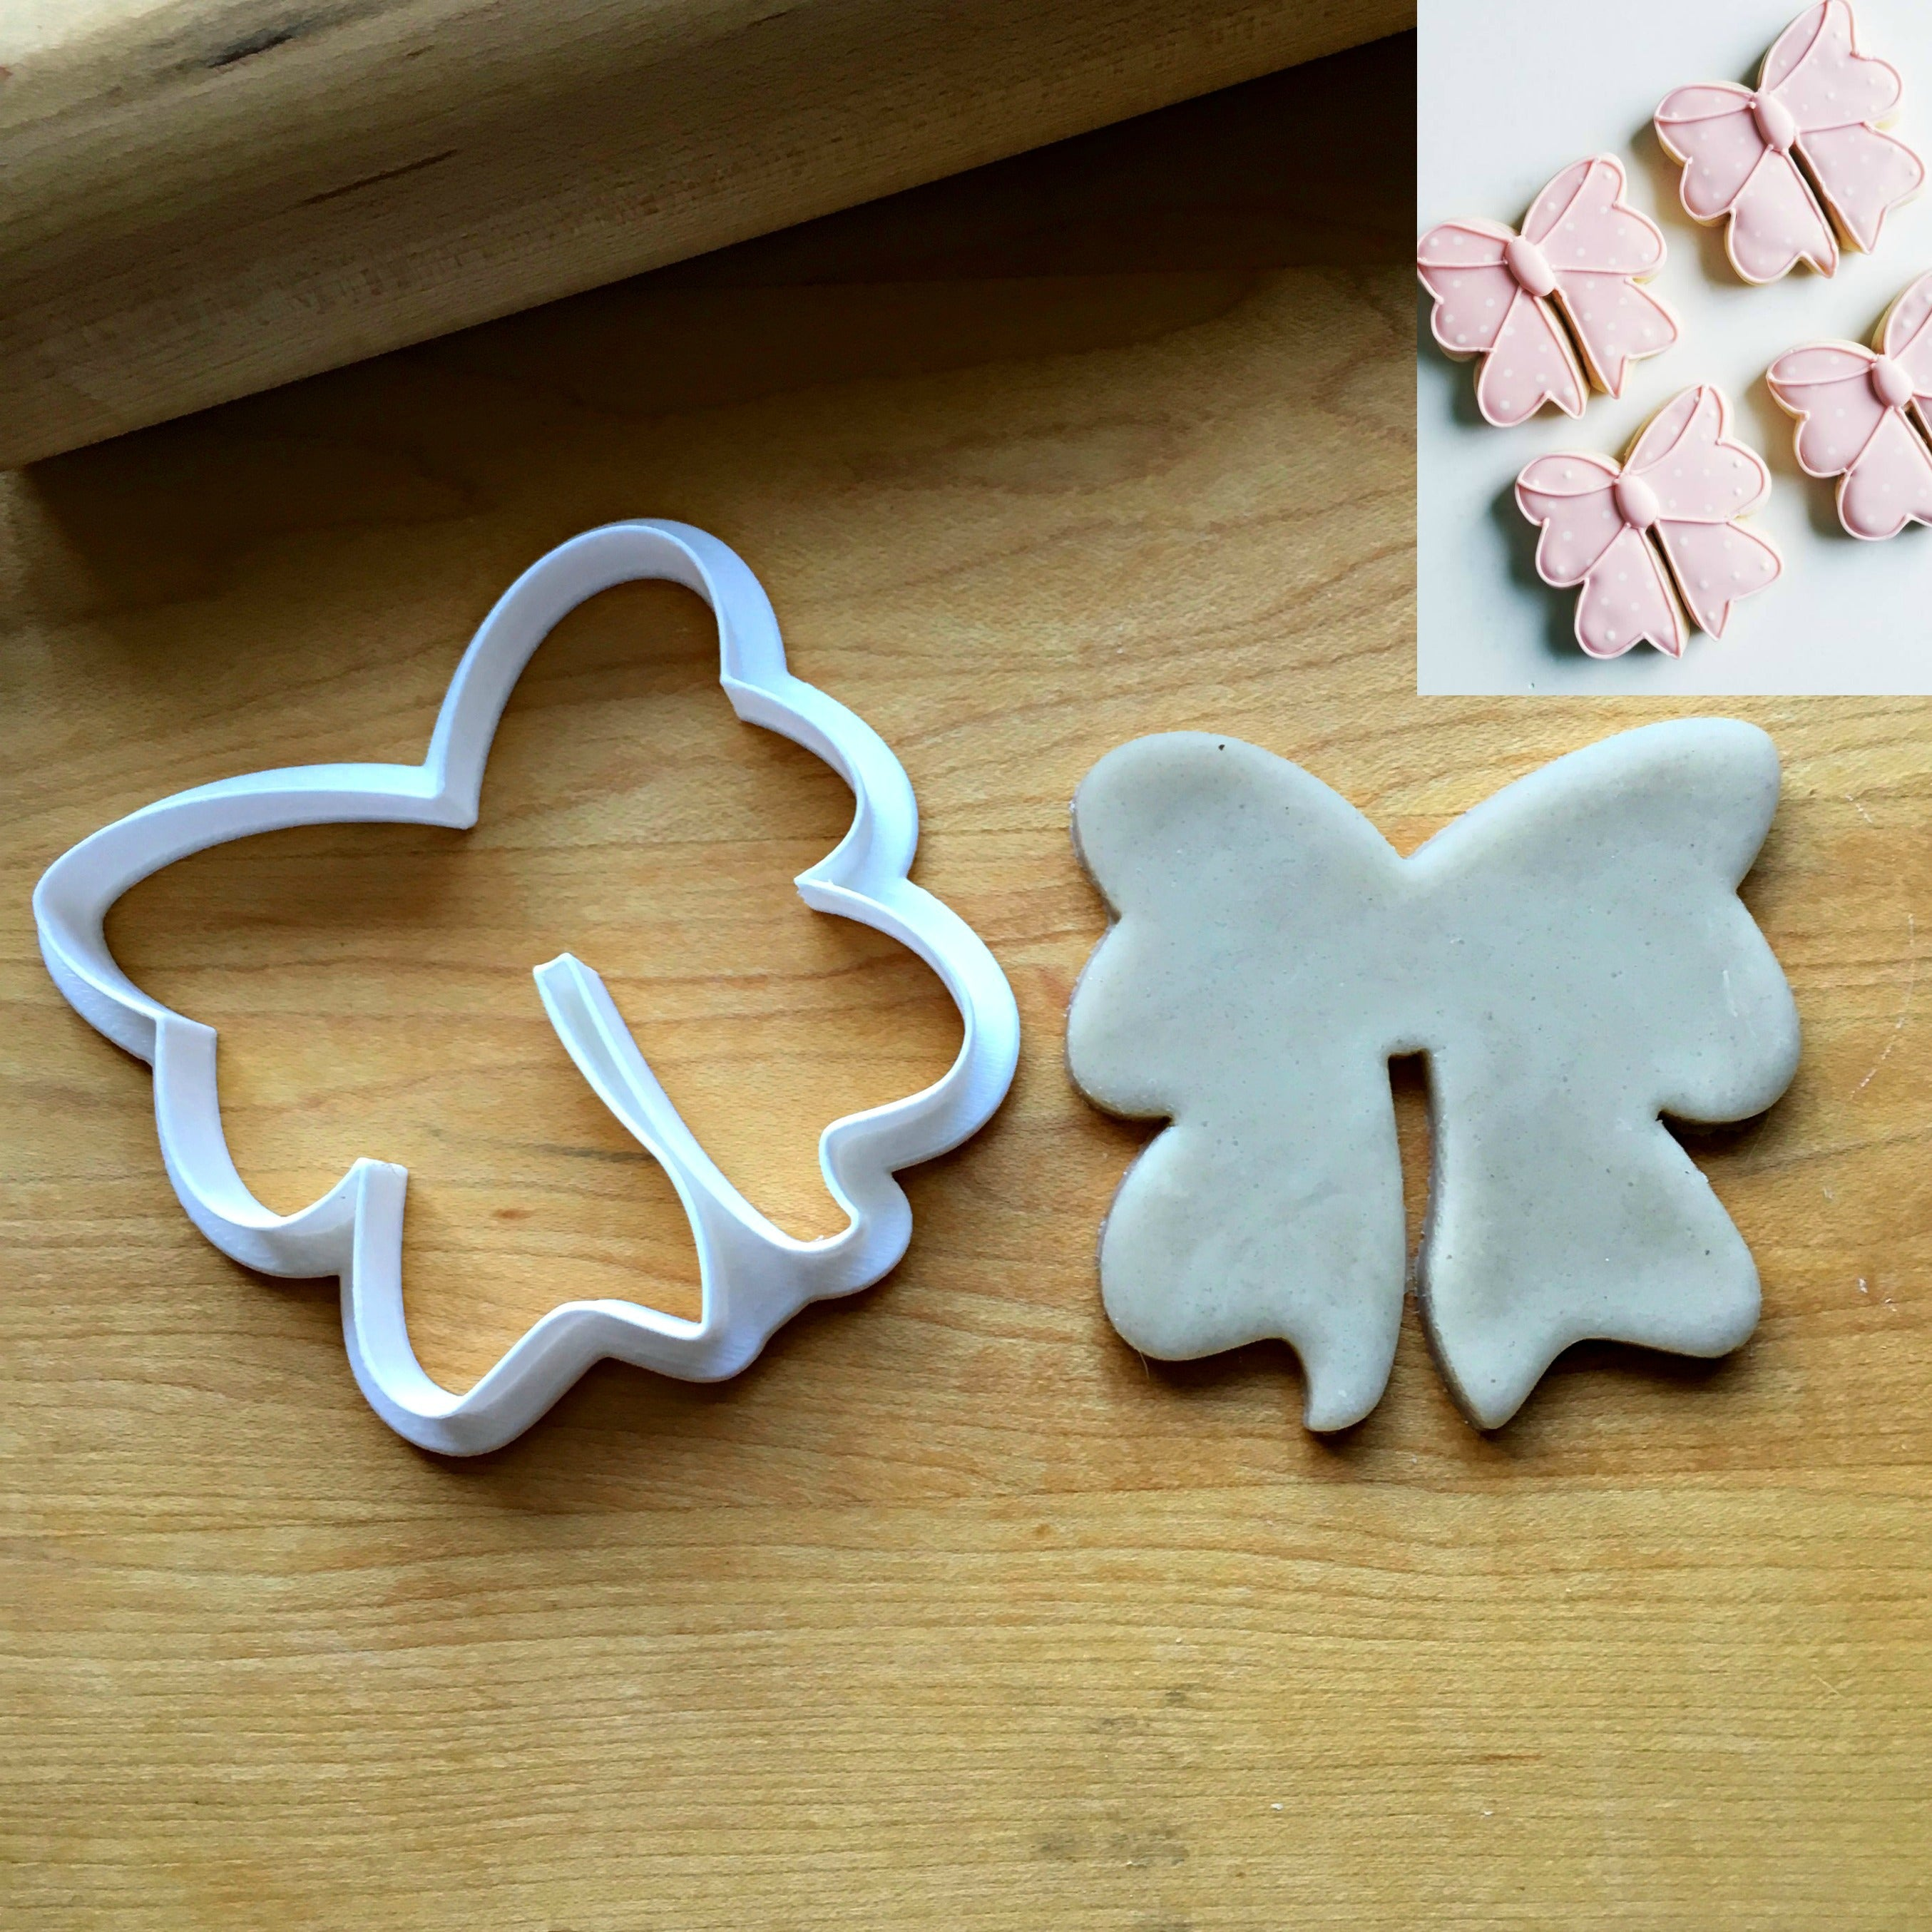 Ribbon/Bow Cookie Cutter/Dishwasher Safe